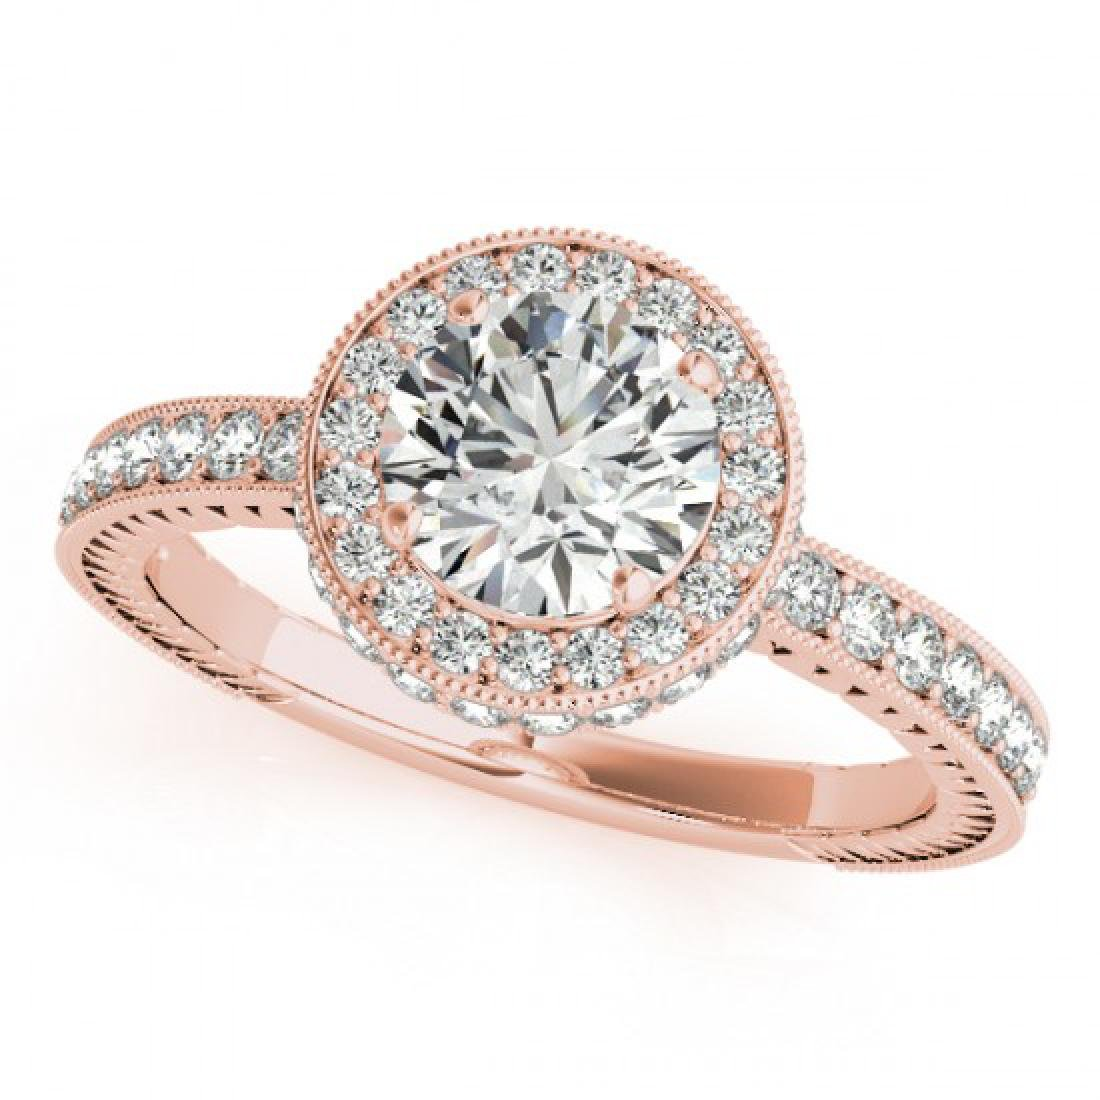 1.51 CTW Certified VS/SI Diamond Solitaire Halo Ring